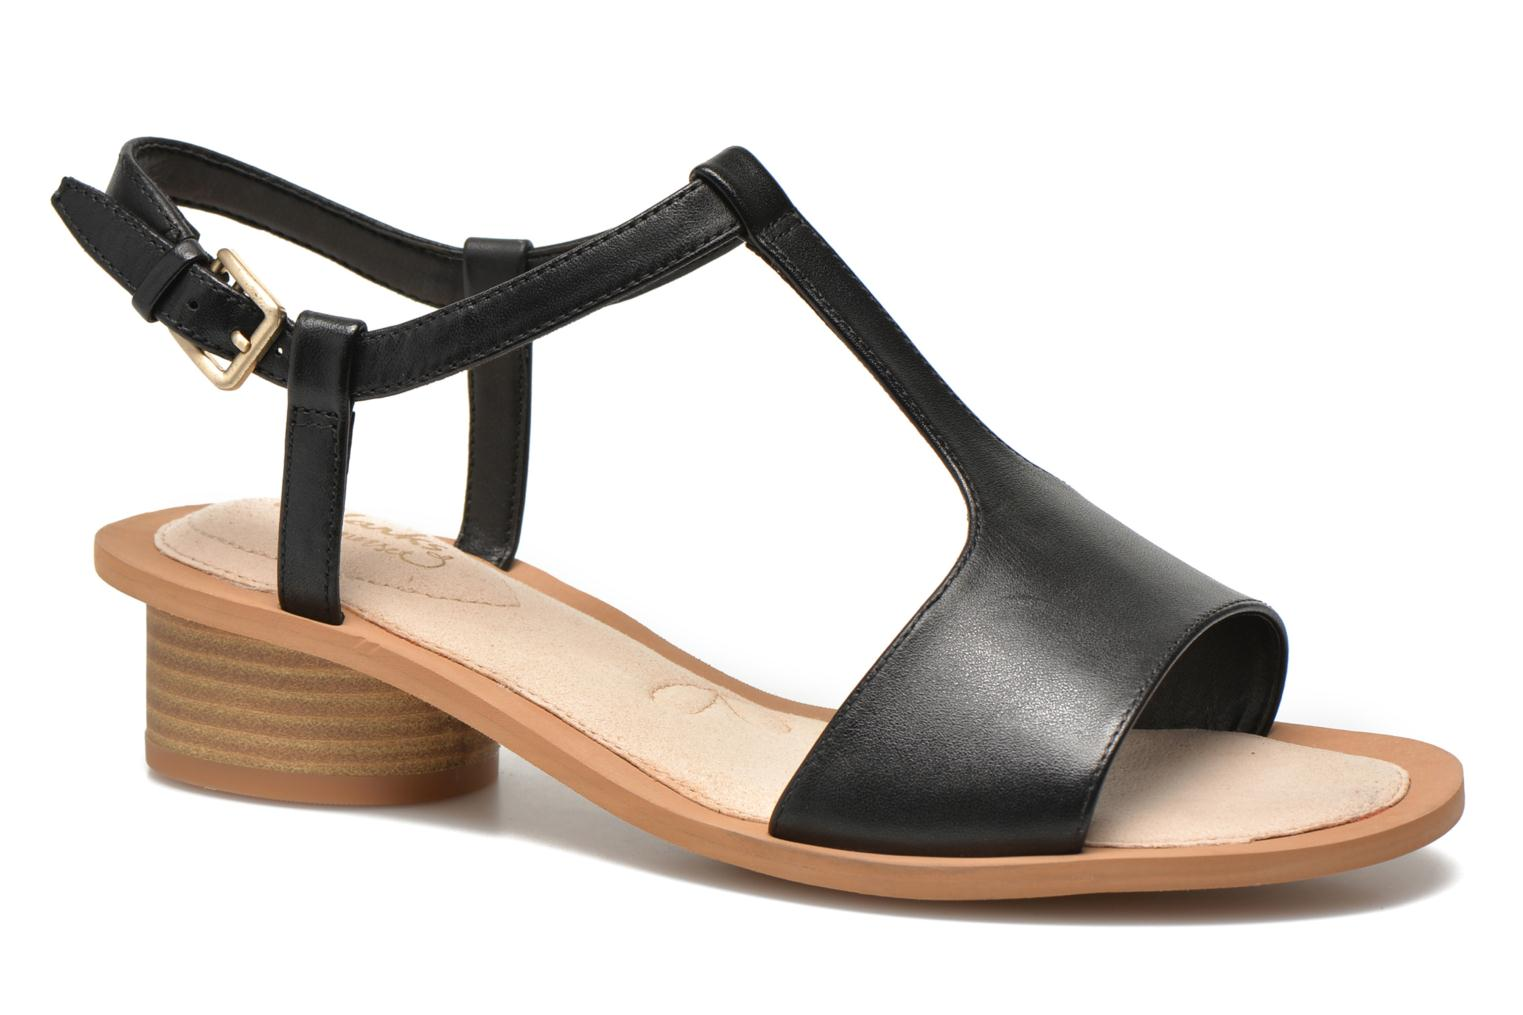 2535f6c1a29b0 ... Art Leather Sandals in Brown - Lyst super cheap 1cbaf 4a468  Sandals  Clarks Sandcastle Ice Black detailed view Pair view factory outlets 018f6  2eab7 ...